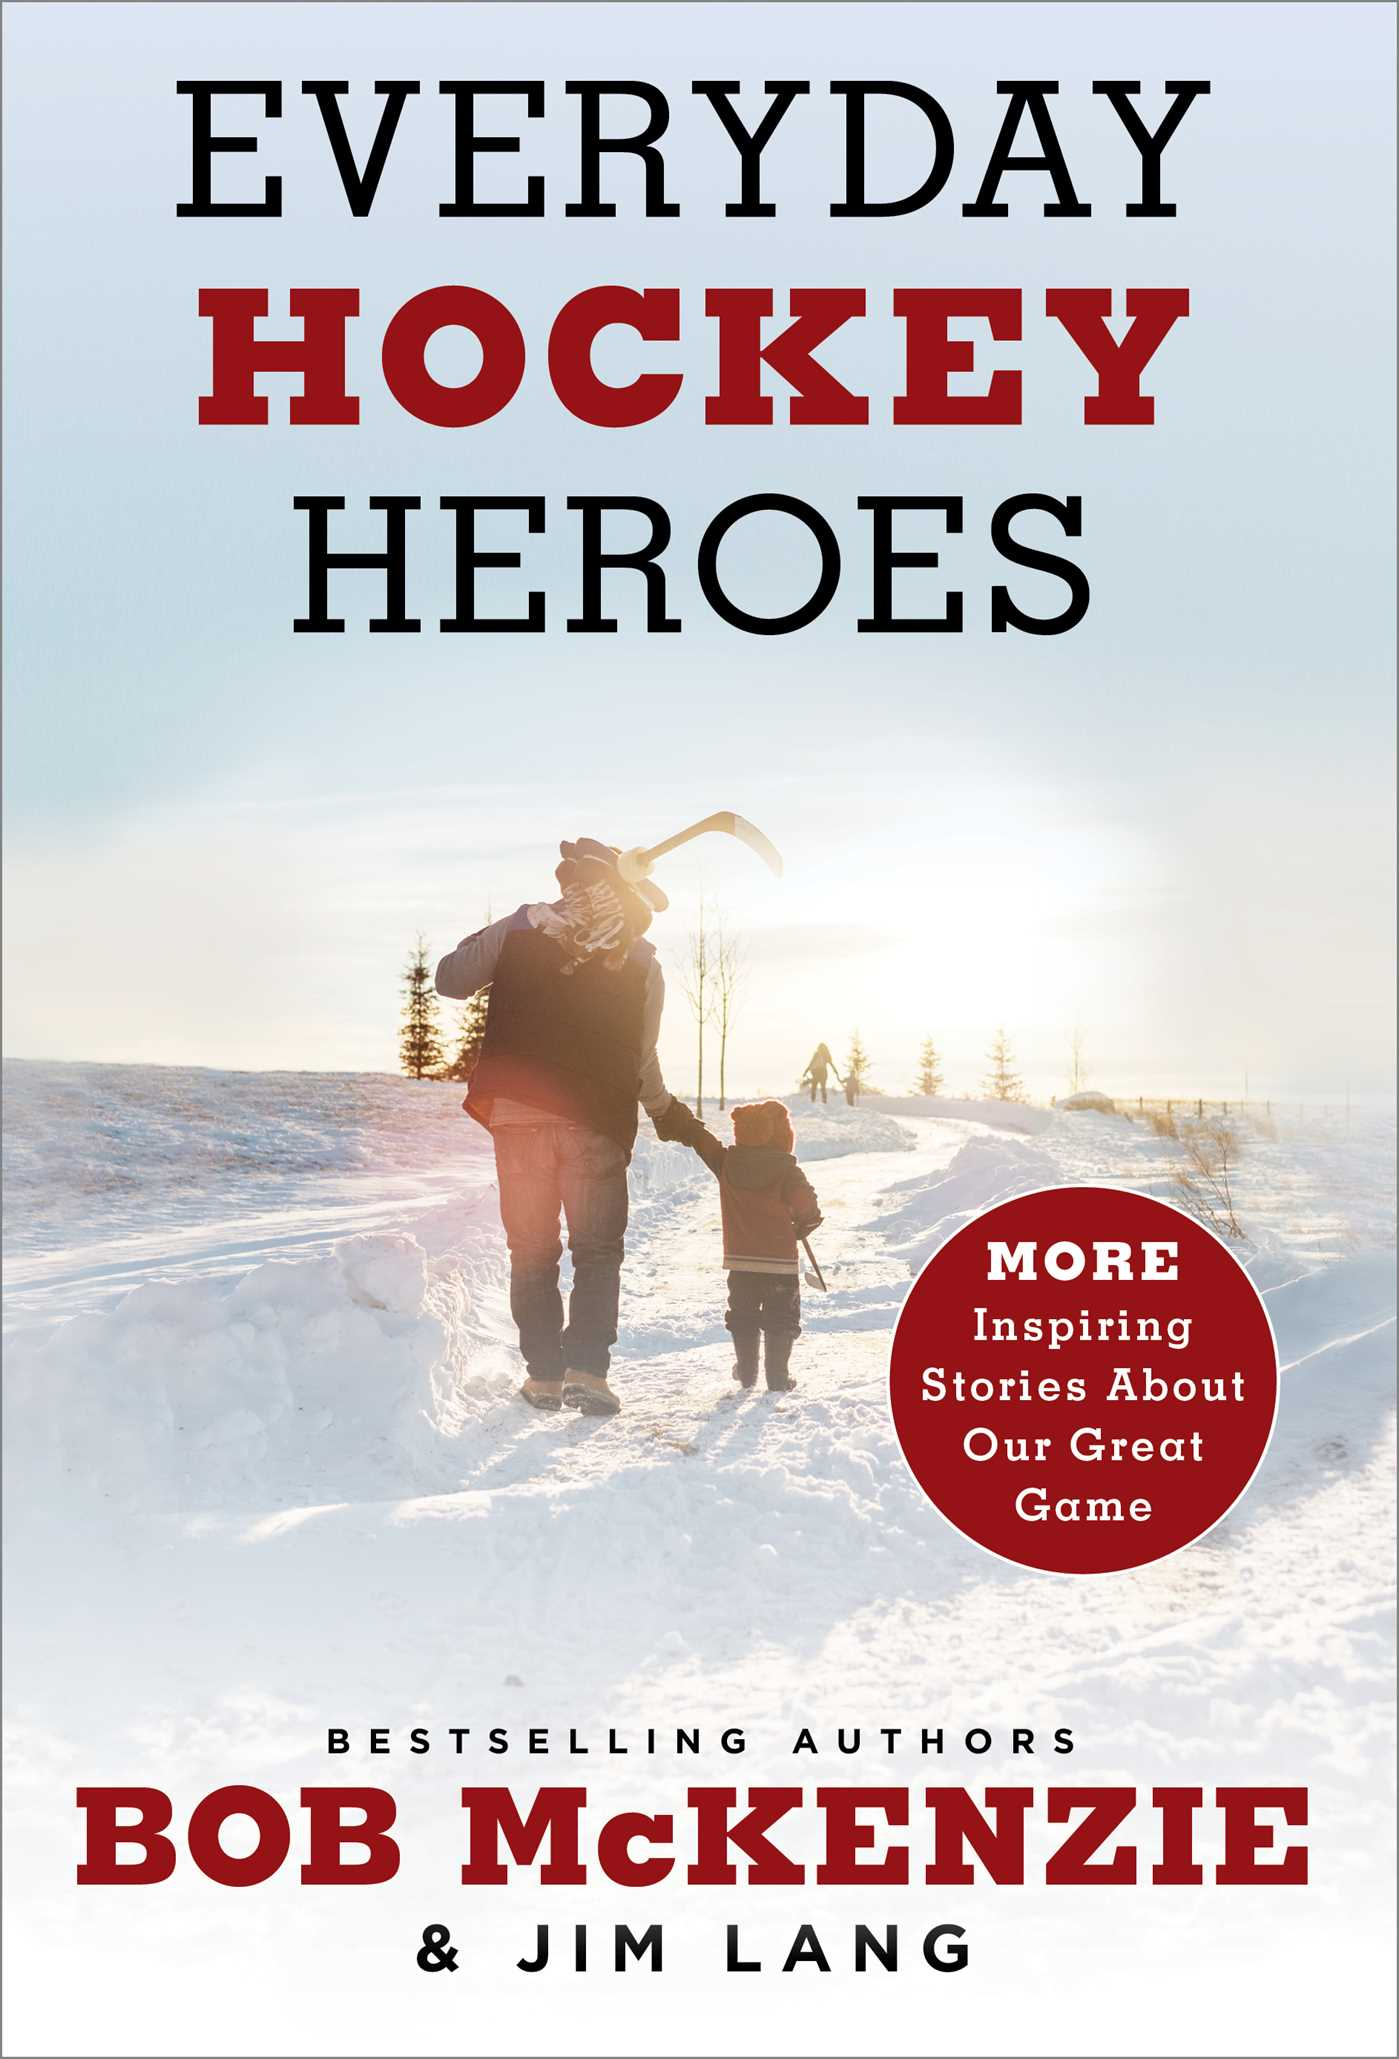 Everyday Hockey Heroes, Volume II